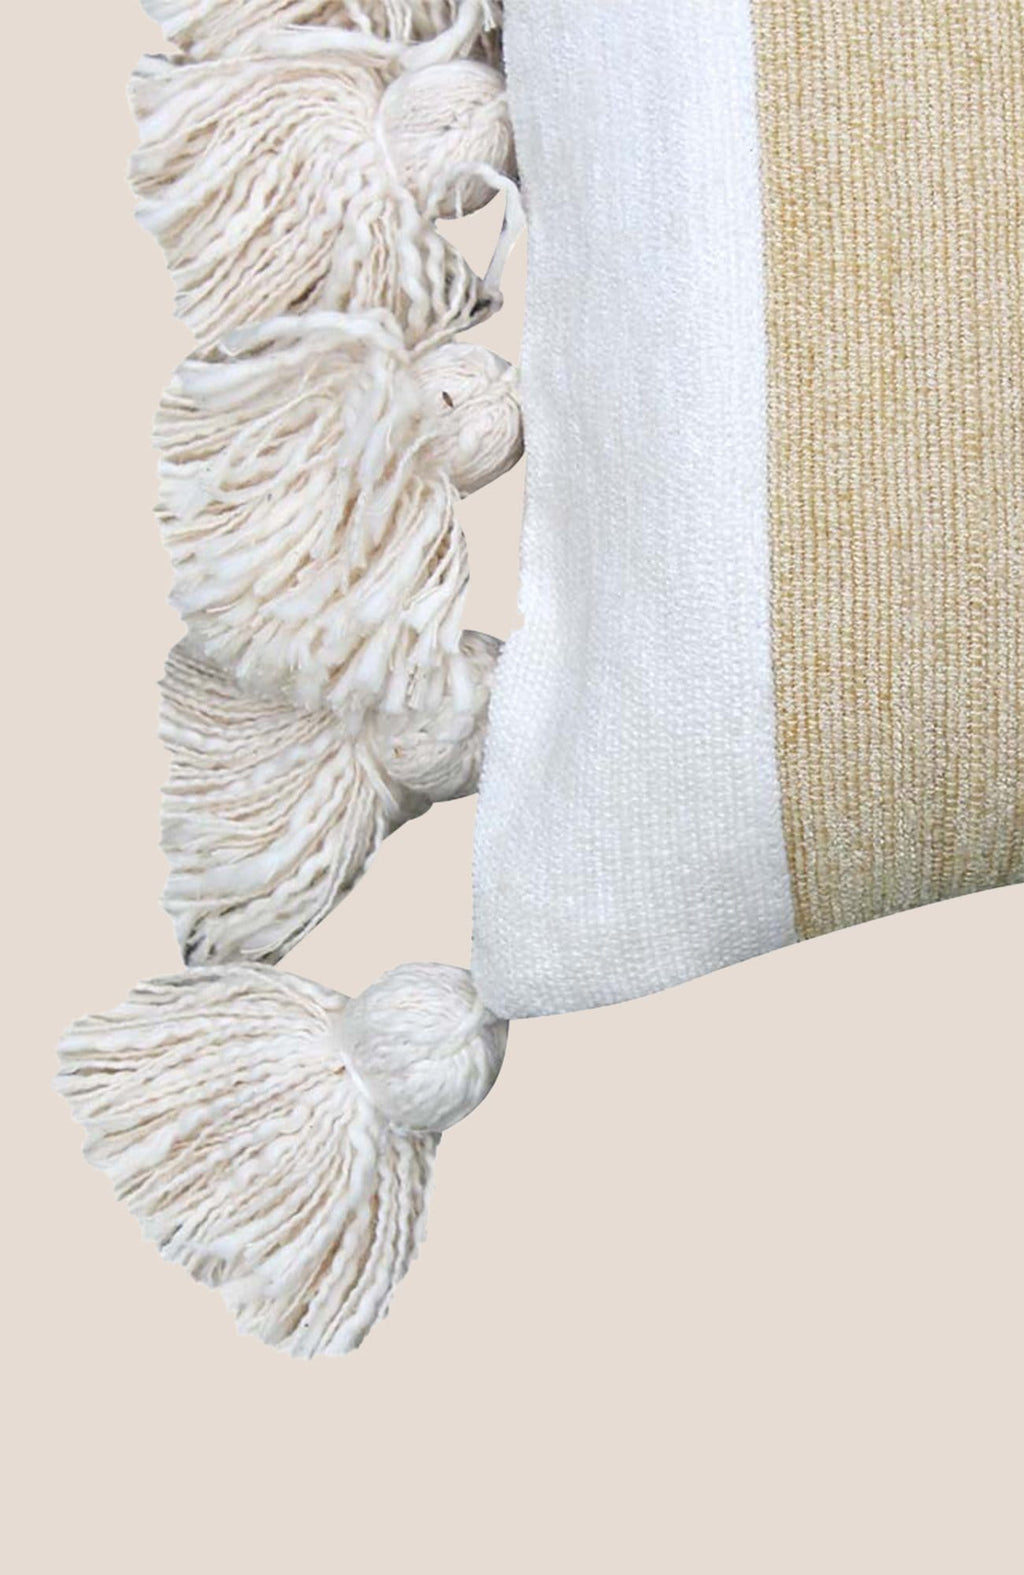 Pompon Pillow Cover Tessa - Home Decor | Shop Baskets, Ceramics, Pillows, Rugs & Wall Hangs online